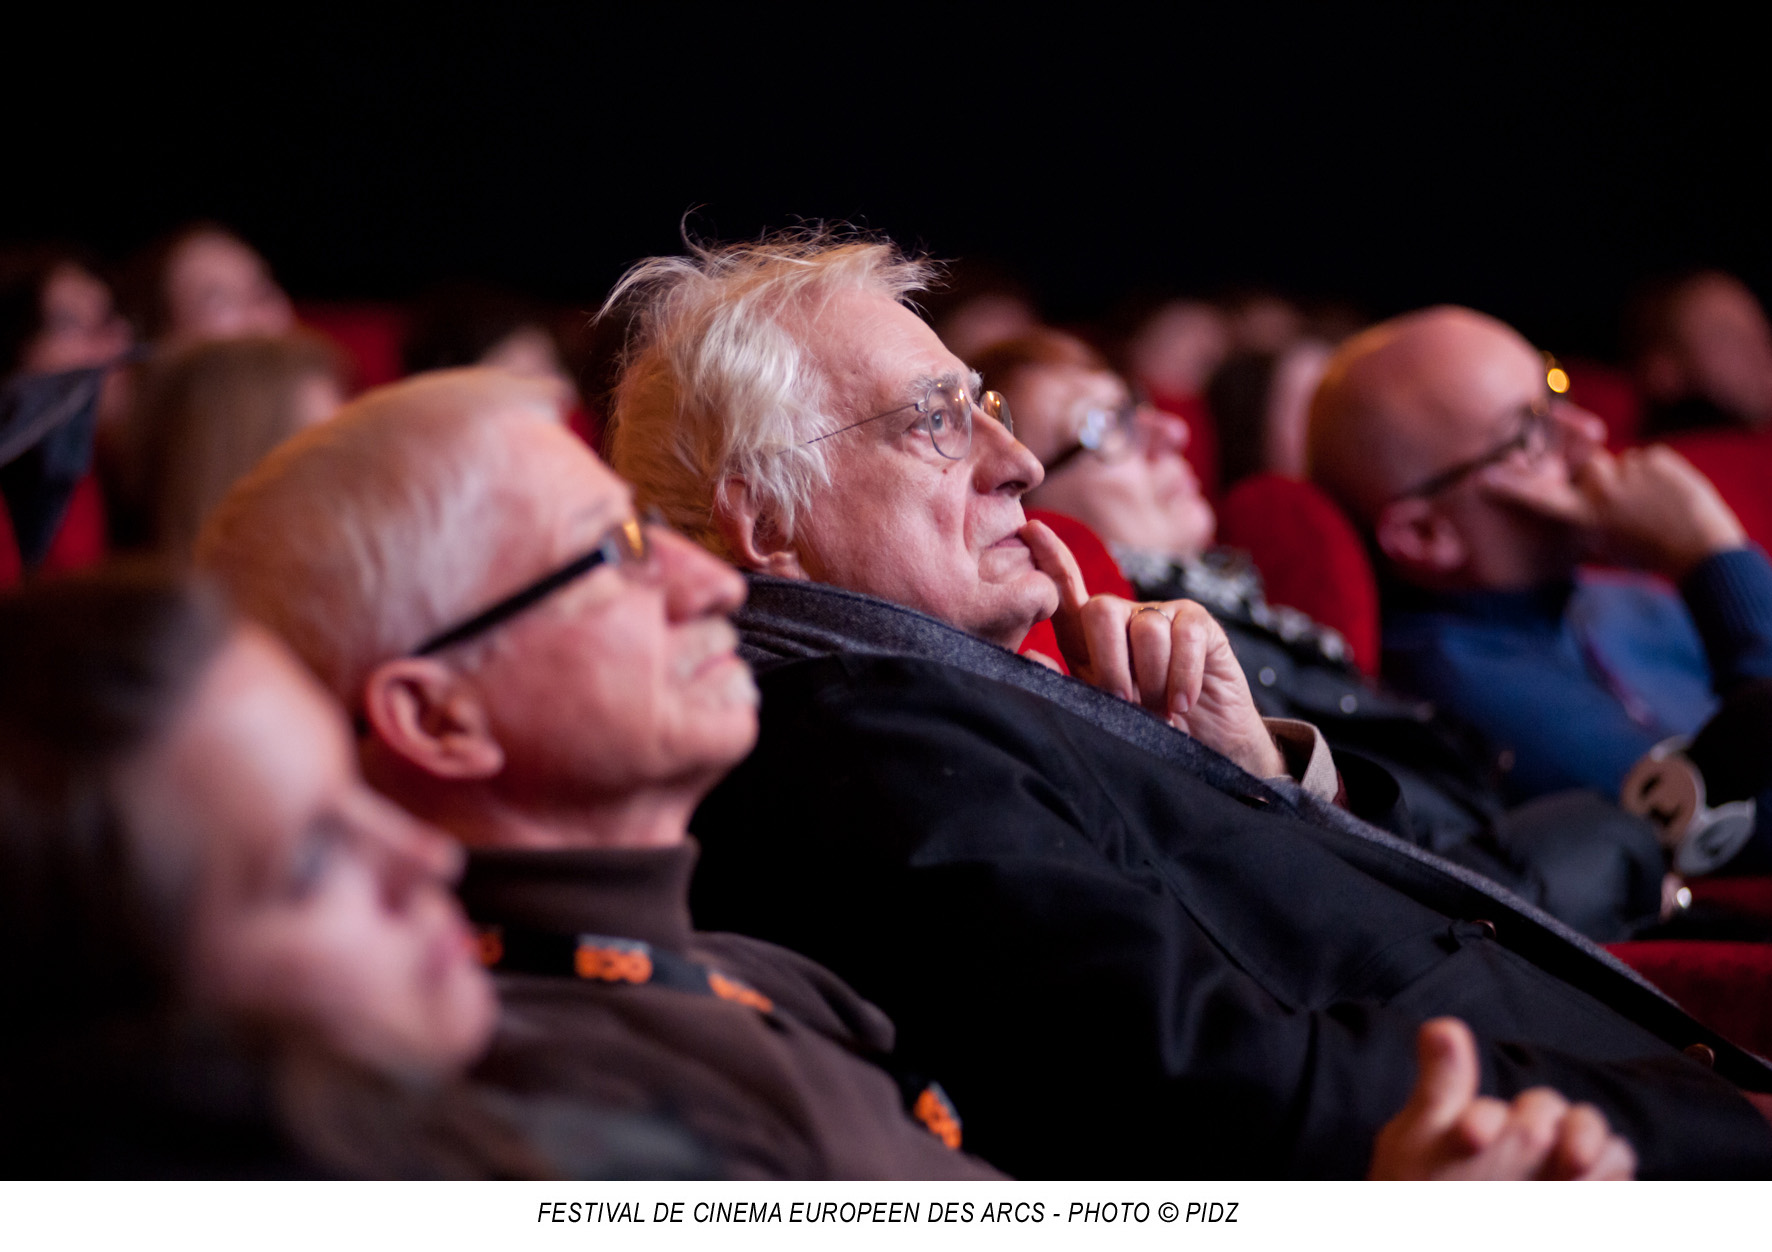 Bourg saint Maurice. Bertrand Tavernier en salle durant une projection. - Photo : PIDZ